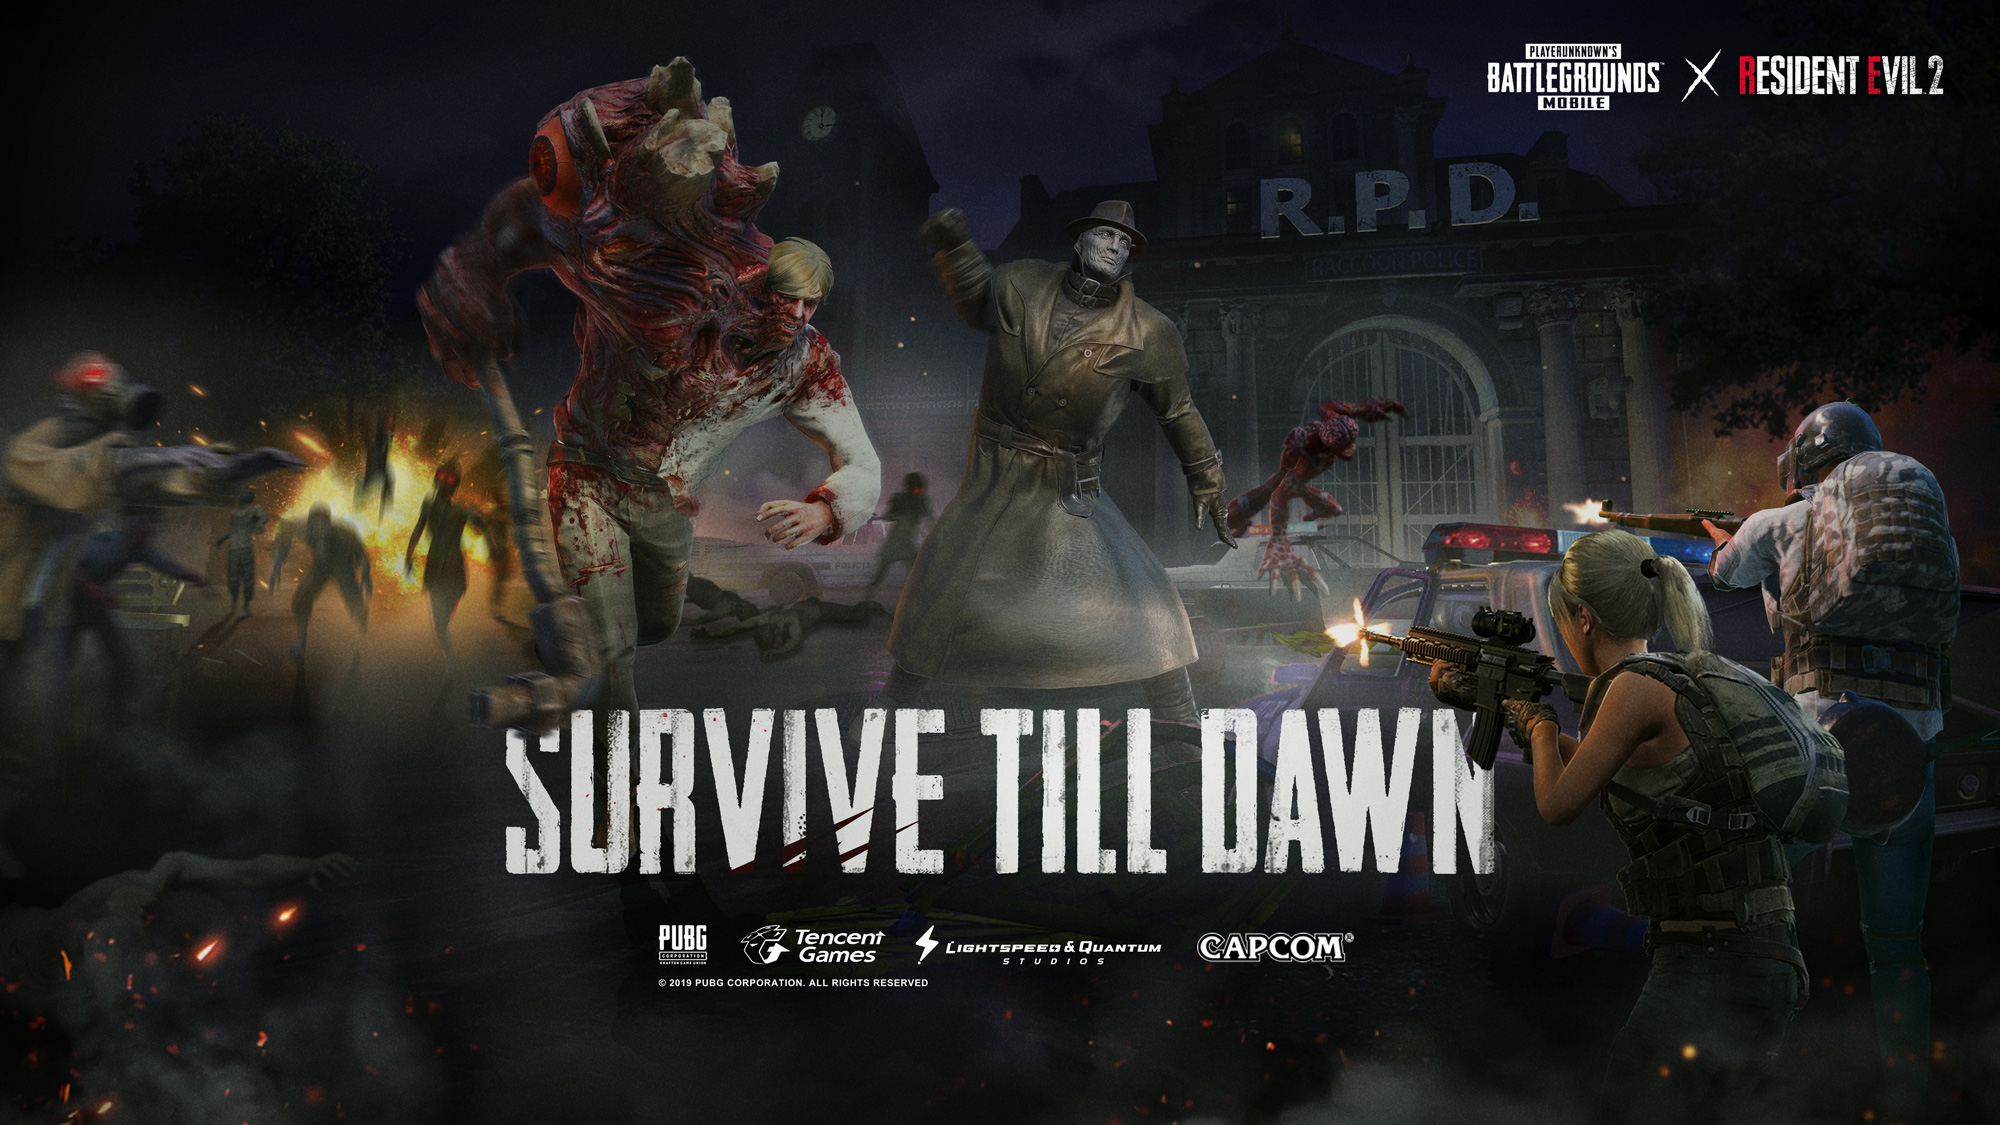 Giveaway] Win 'PUBG MOBILE' x 'Resident Evil 2' Code Bundles To